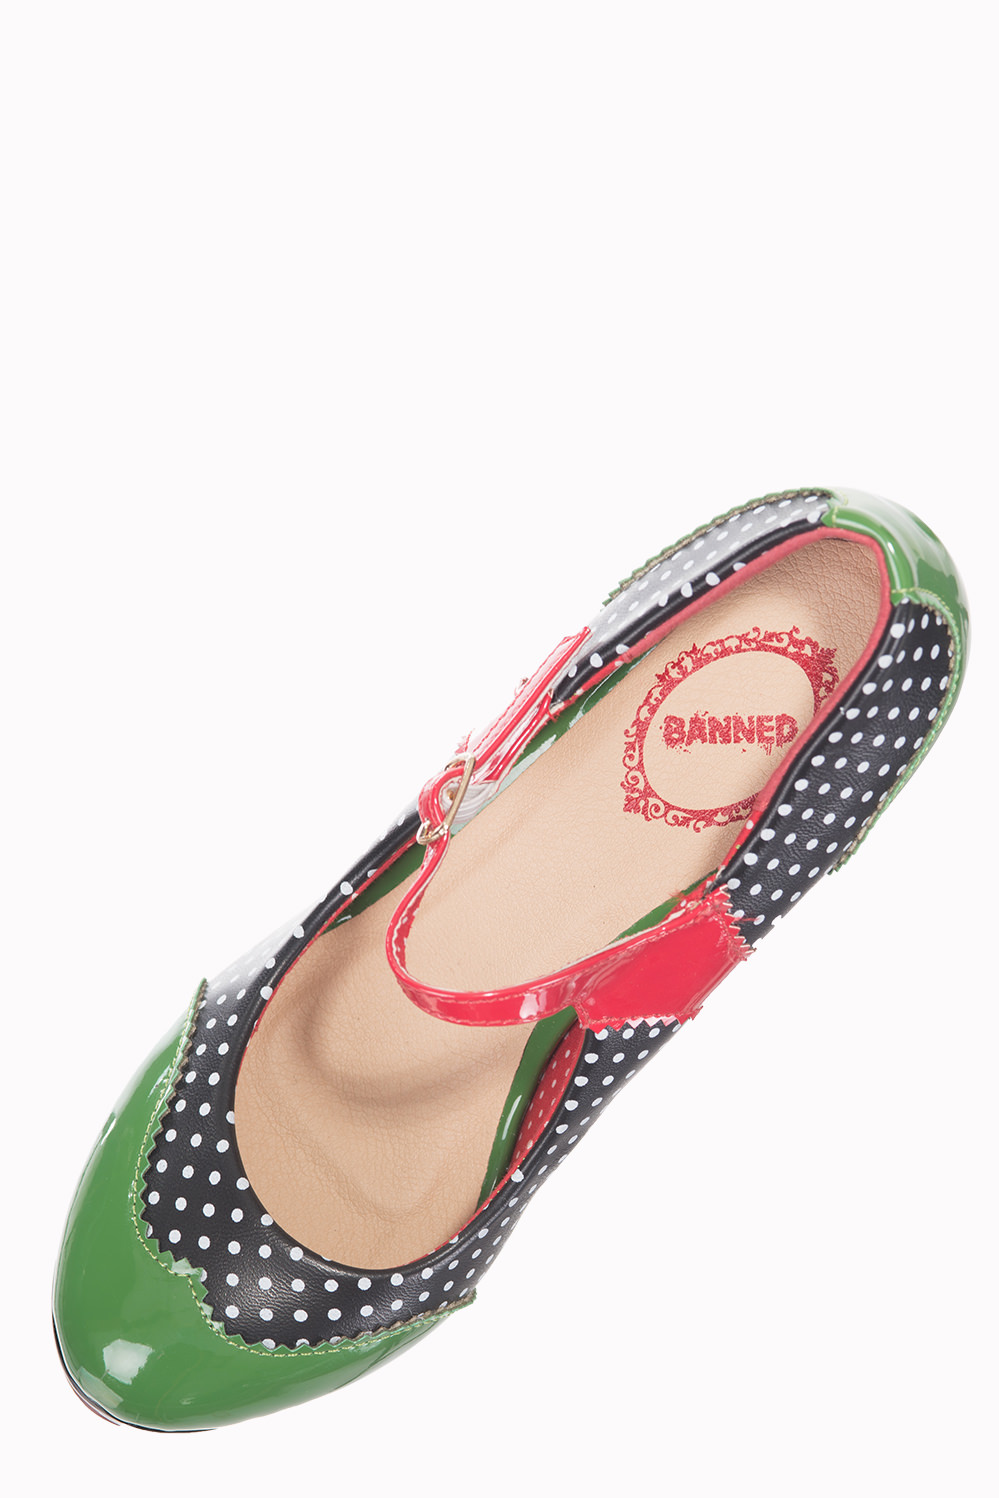 Dancing Days Mary Jane Green Black 50s Shoes